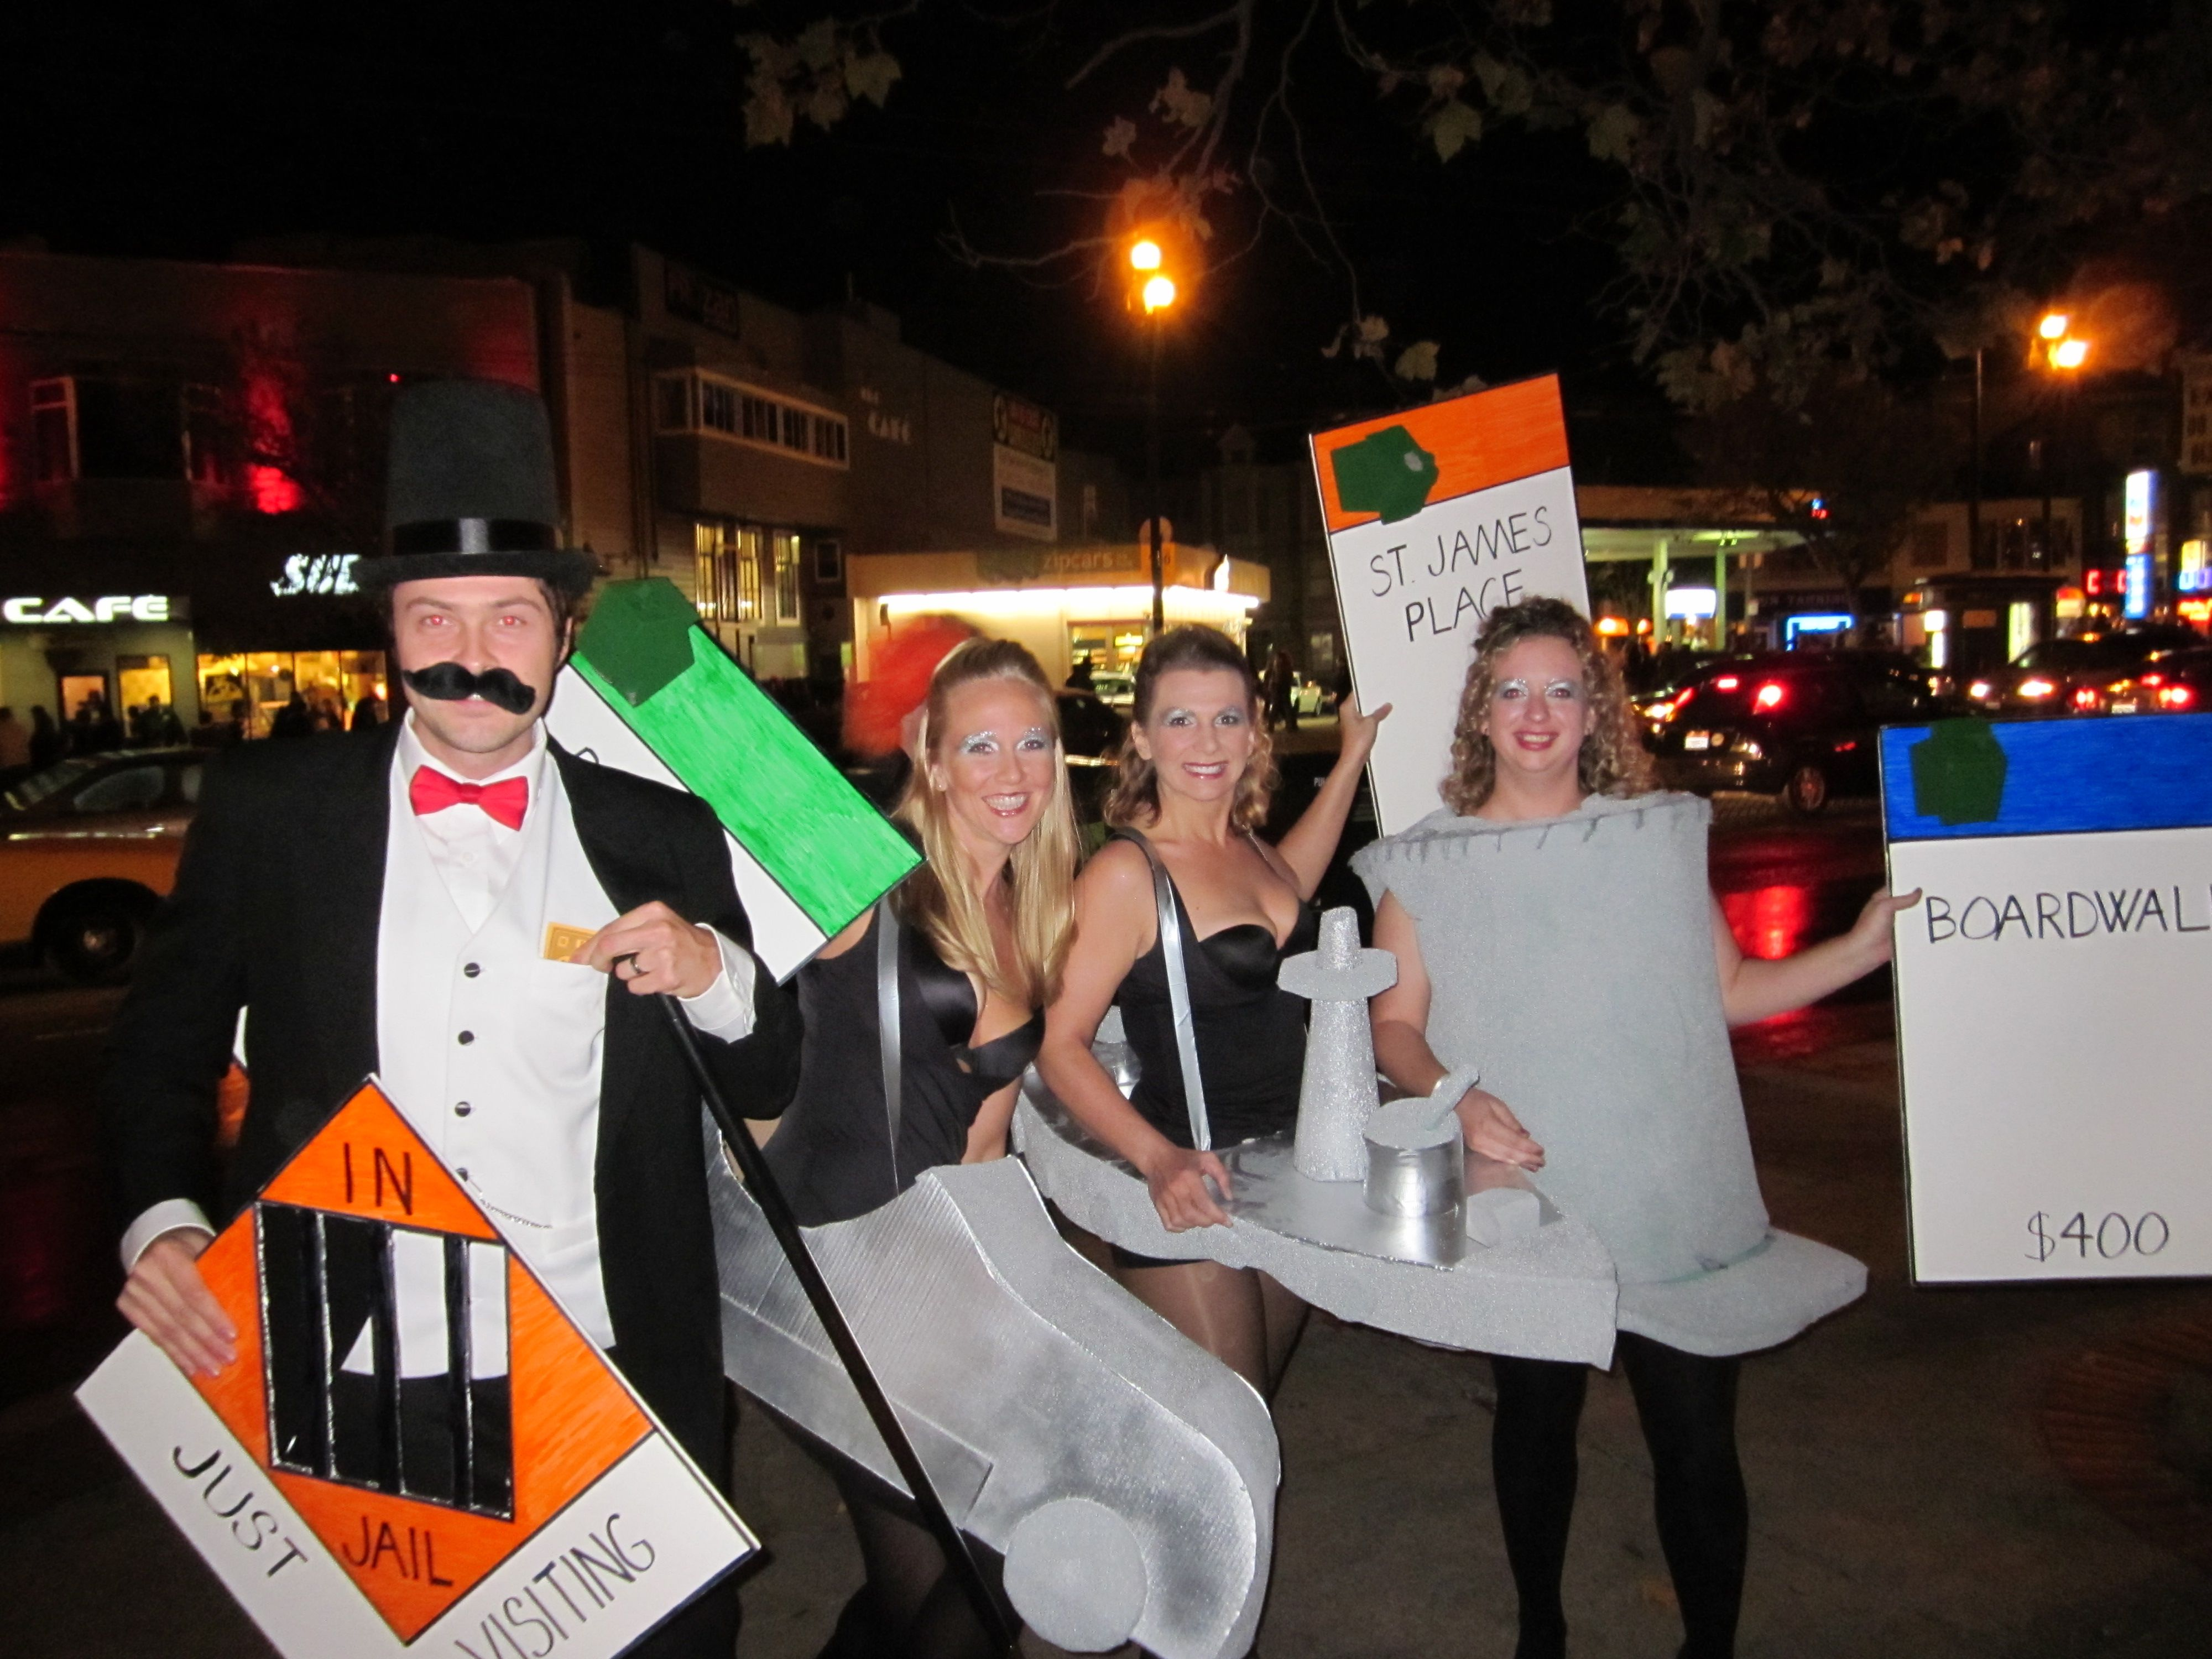 Group halloween monopoly costume | Fall | Pinterest | Group ...